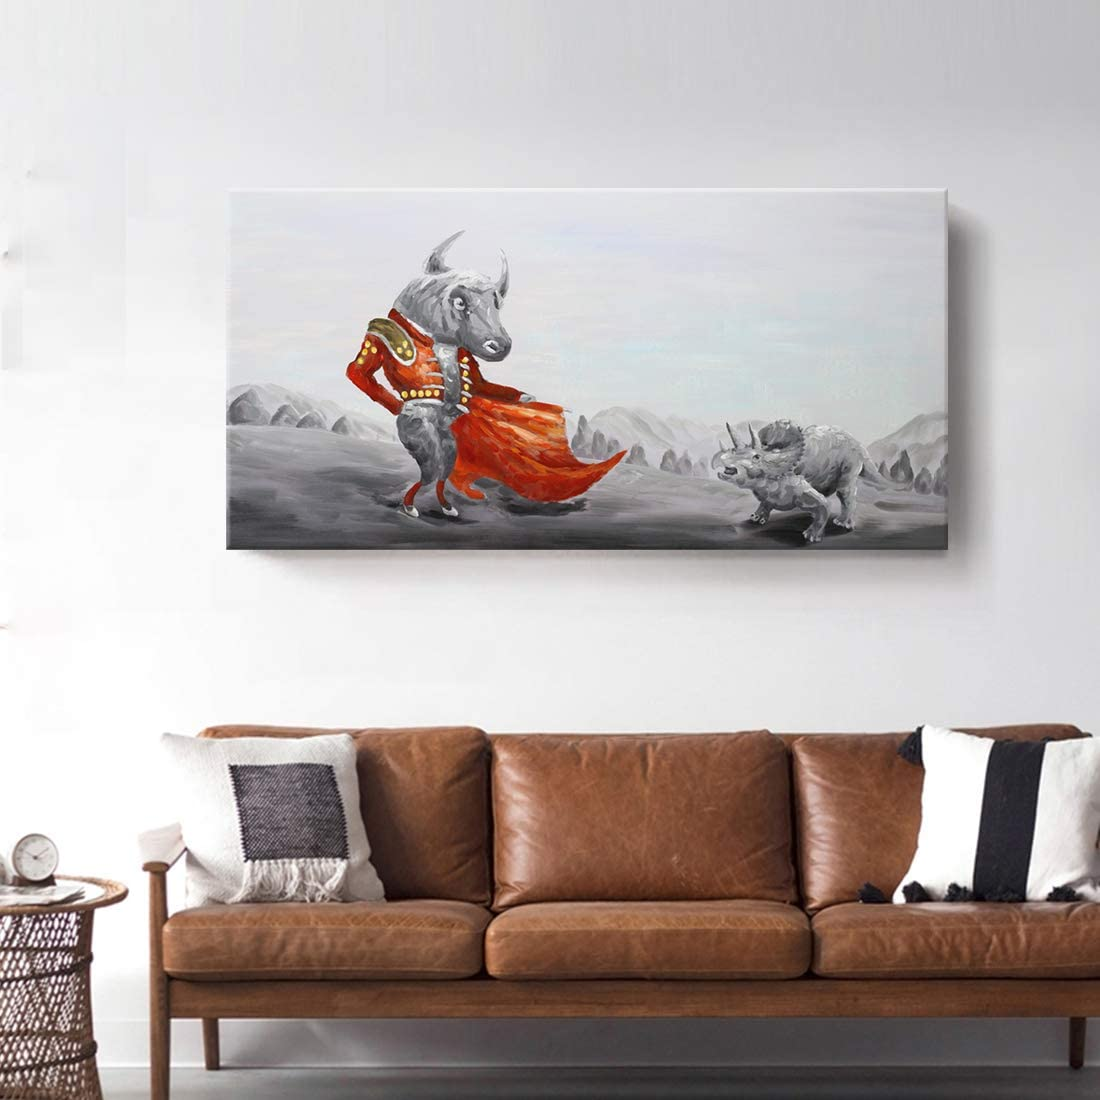 Ejart Large Wall Art Hand-Painted Bull Bullfighter with Dinosaurs Triceratops Painting on Canvas Prints Framed Animal Artwork for Home Decoration Kids Room Boys Room Bed Room Living Room Red Gray